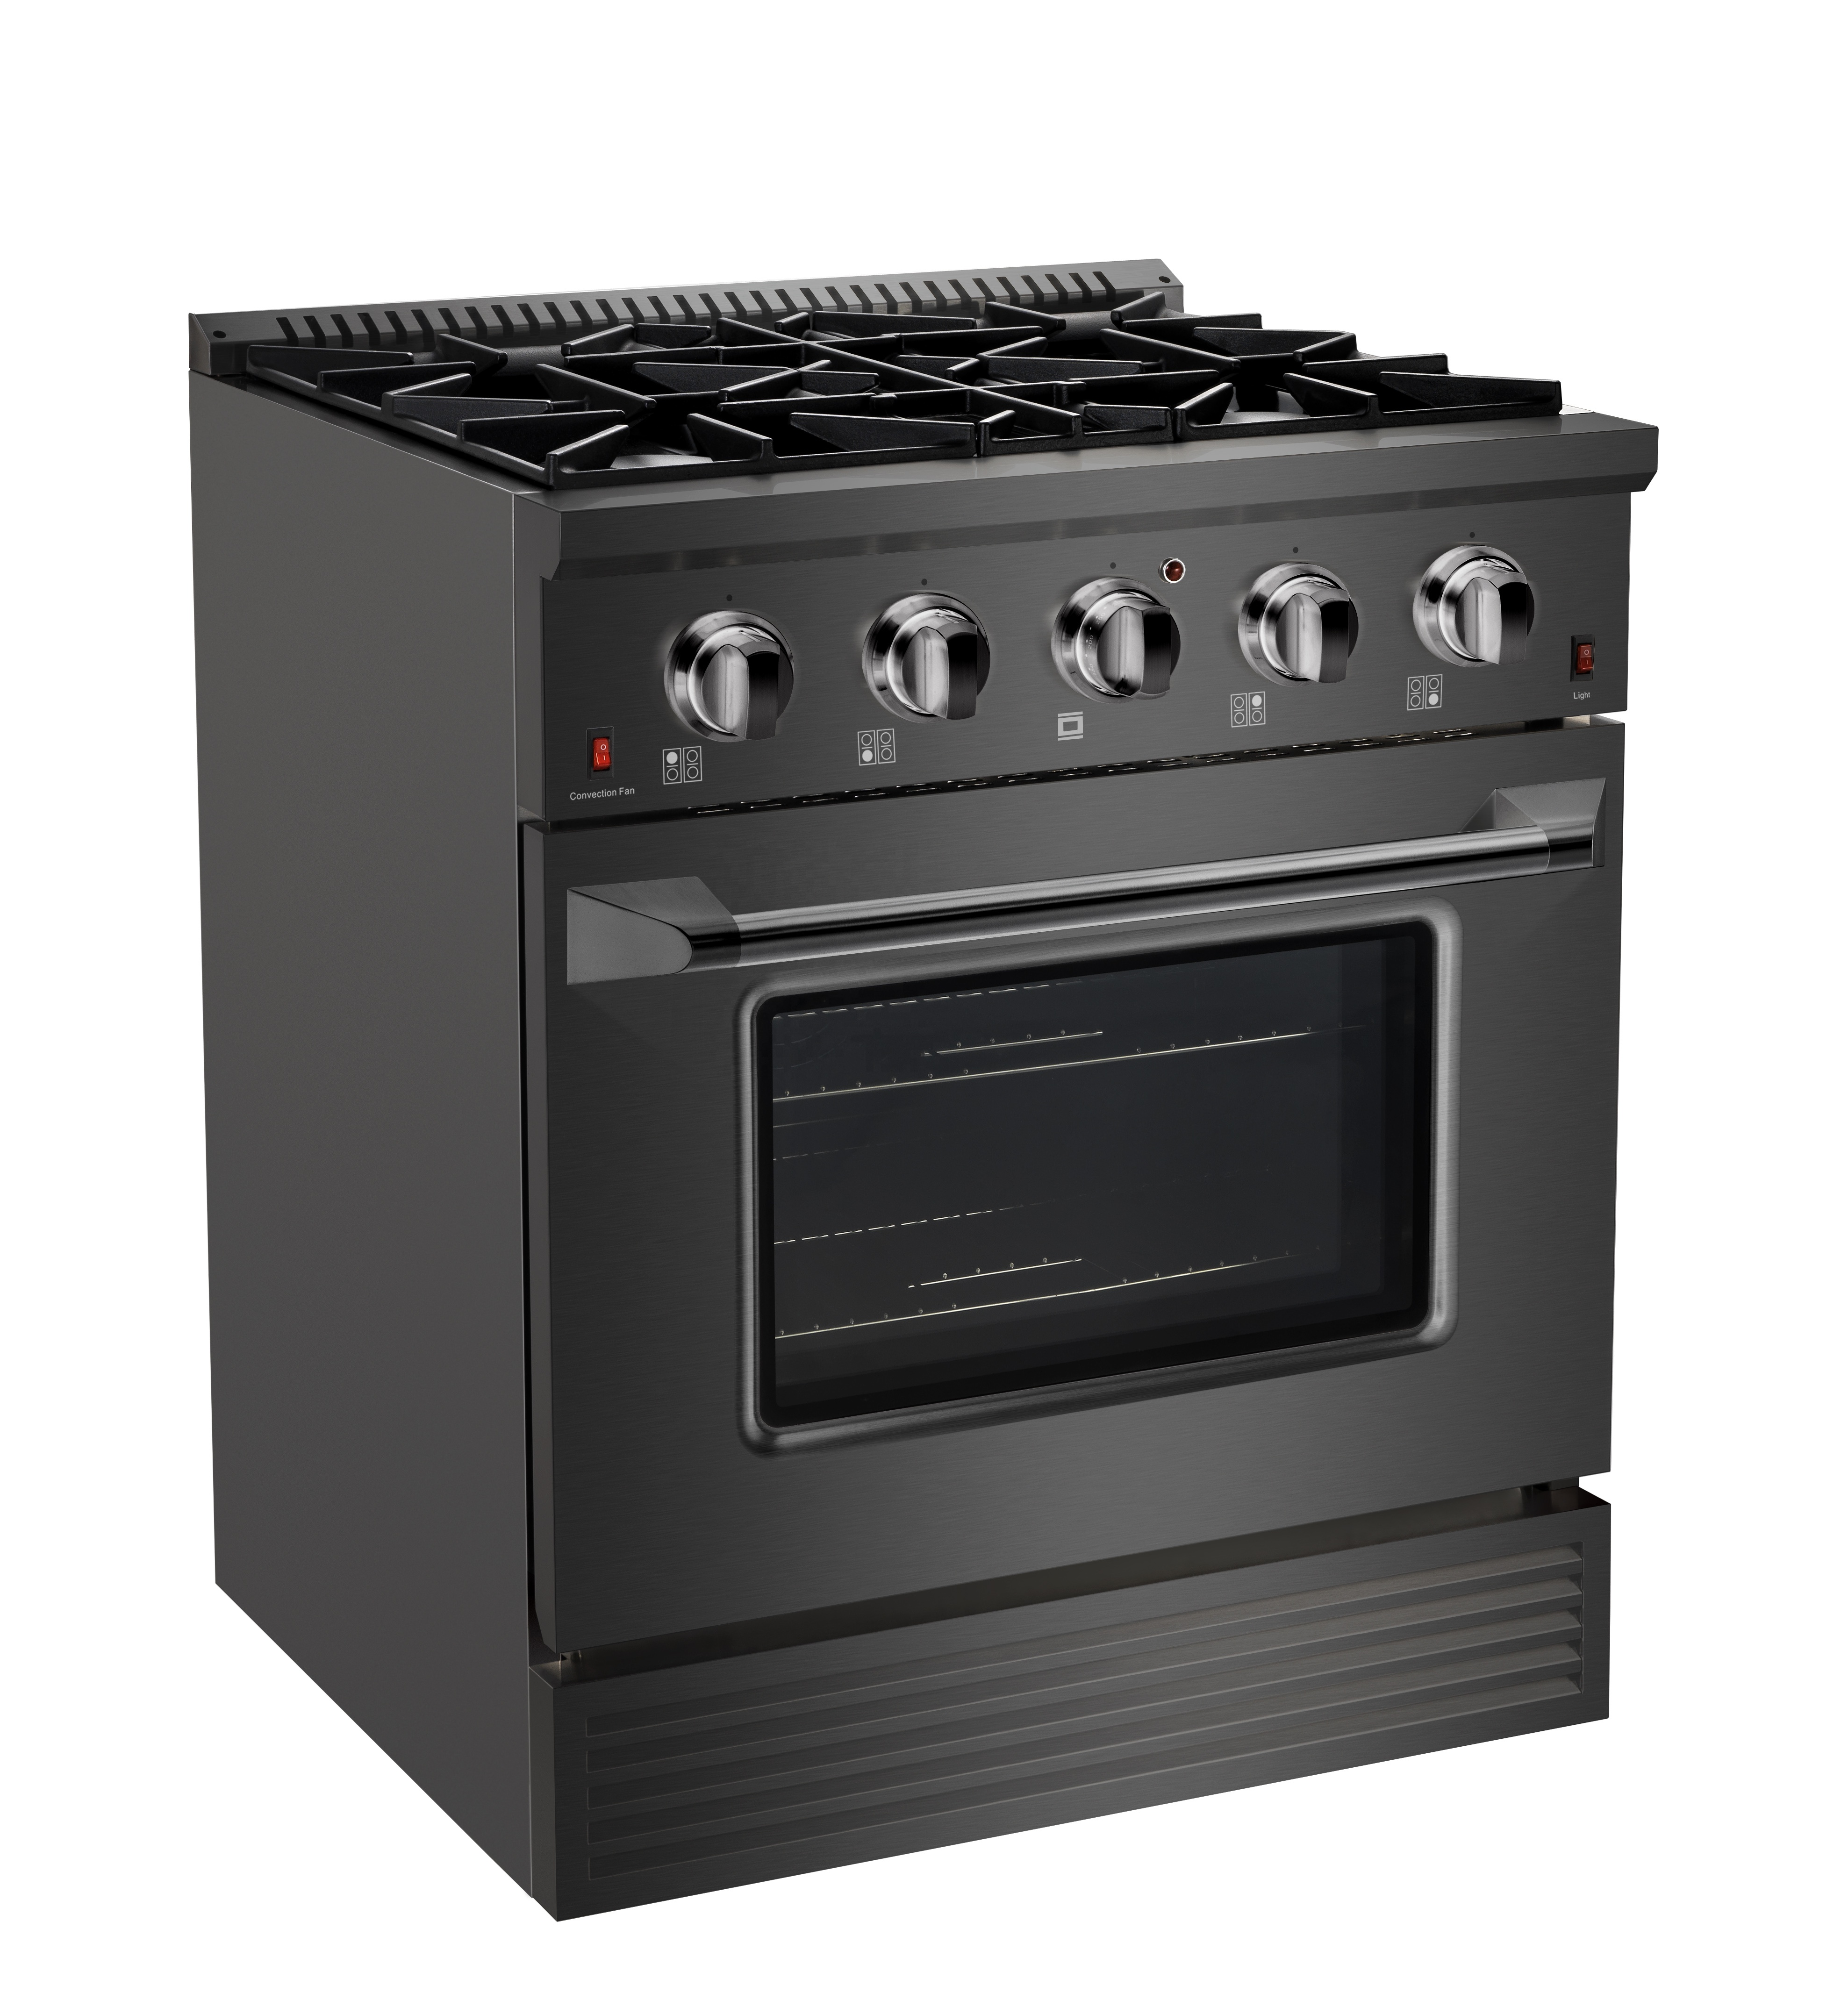 SENG CSA certified kitchen stainless steel professional gas range 4 burners free standing gas cooker oven